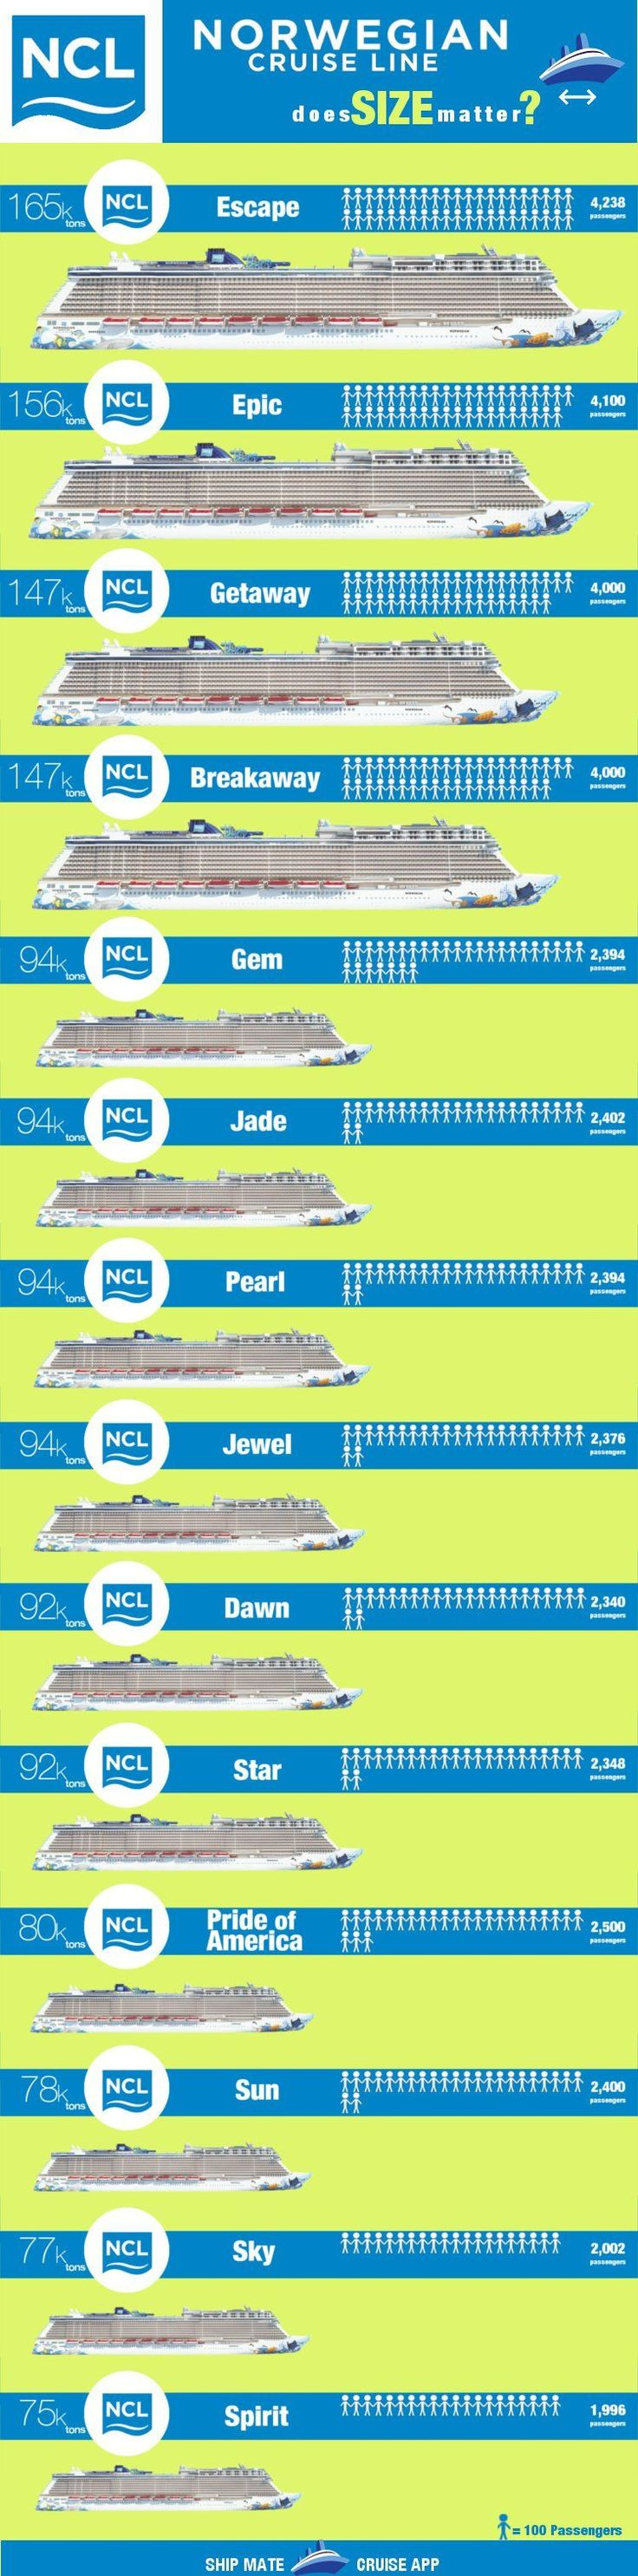 Royal Caribbean Cruise Ship Sizes | Detland.com